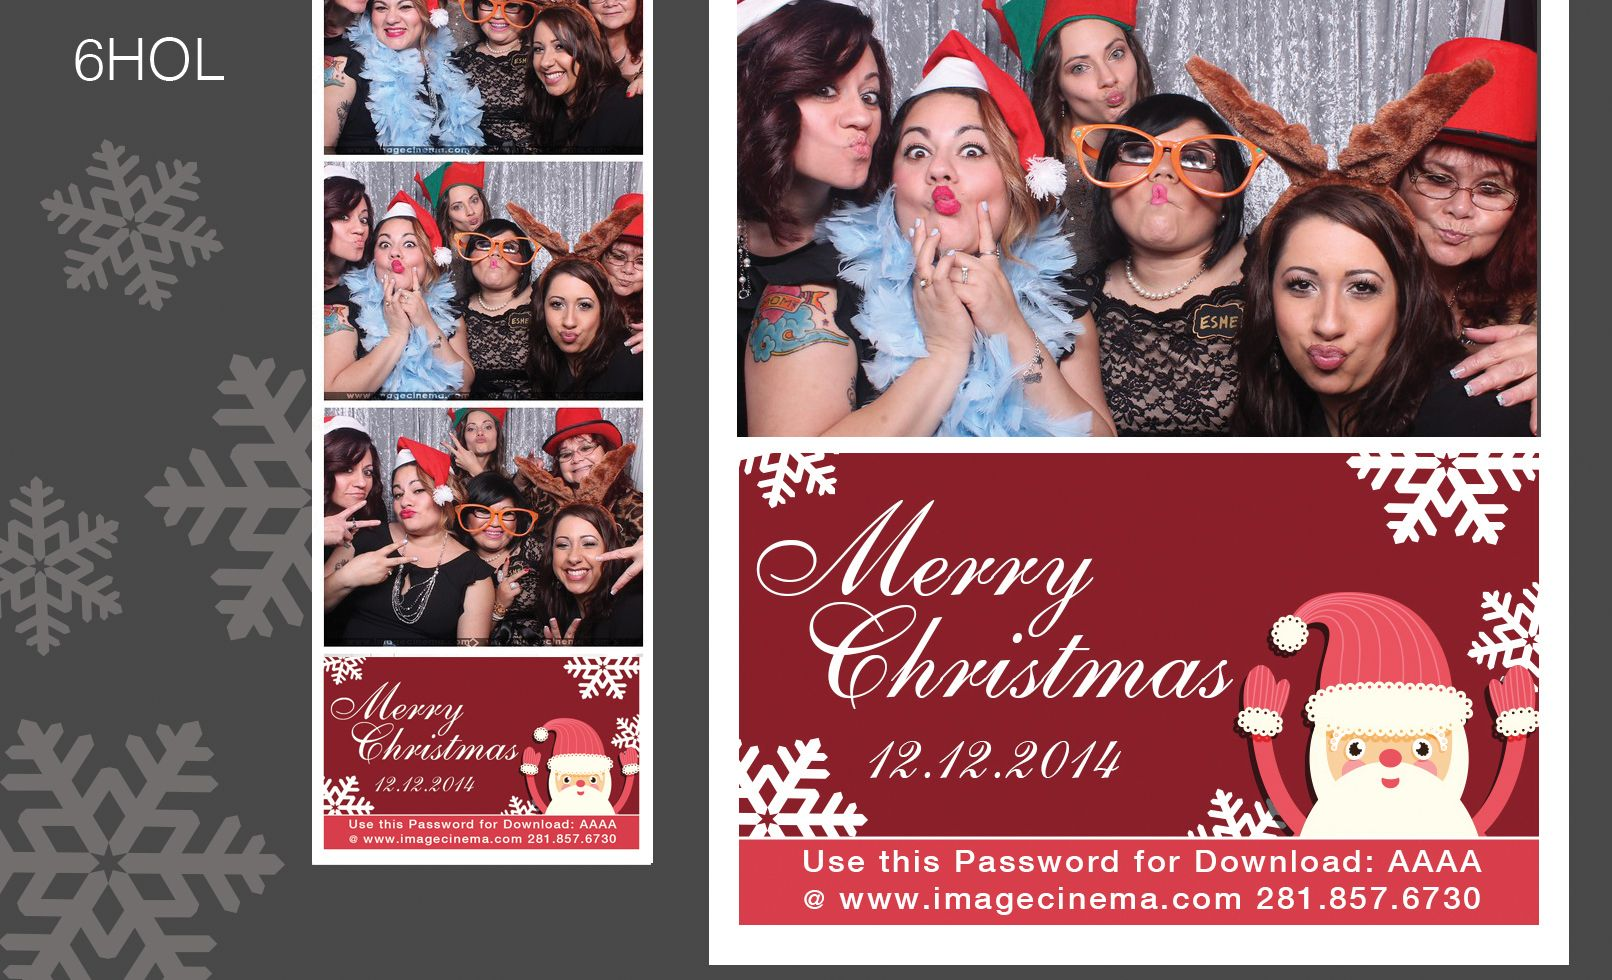 6HOL Merry Christmas from Santa and you! #photobooth  imagecinema.com